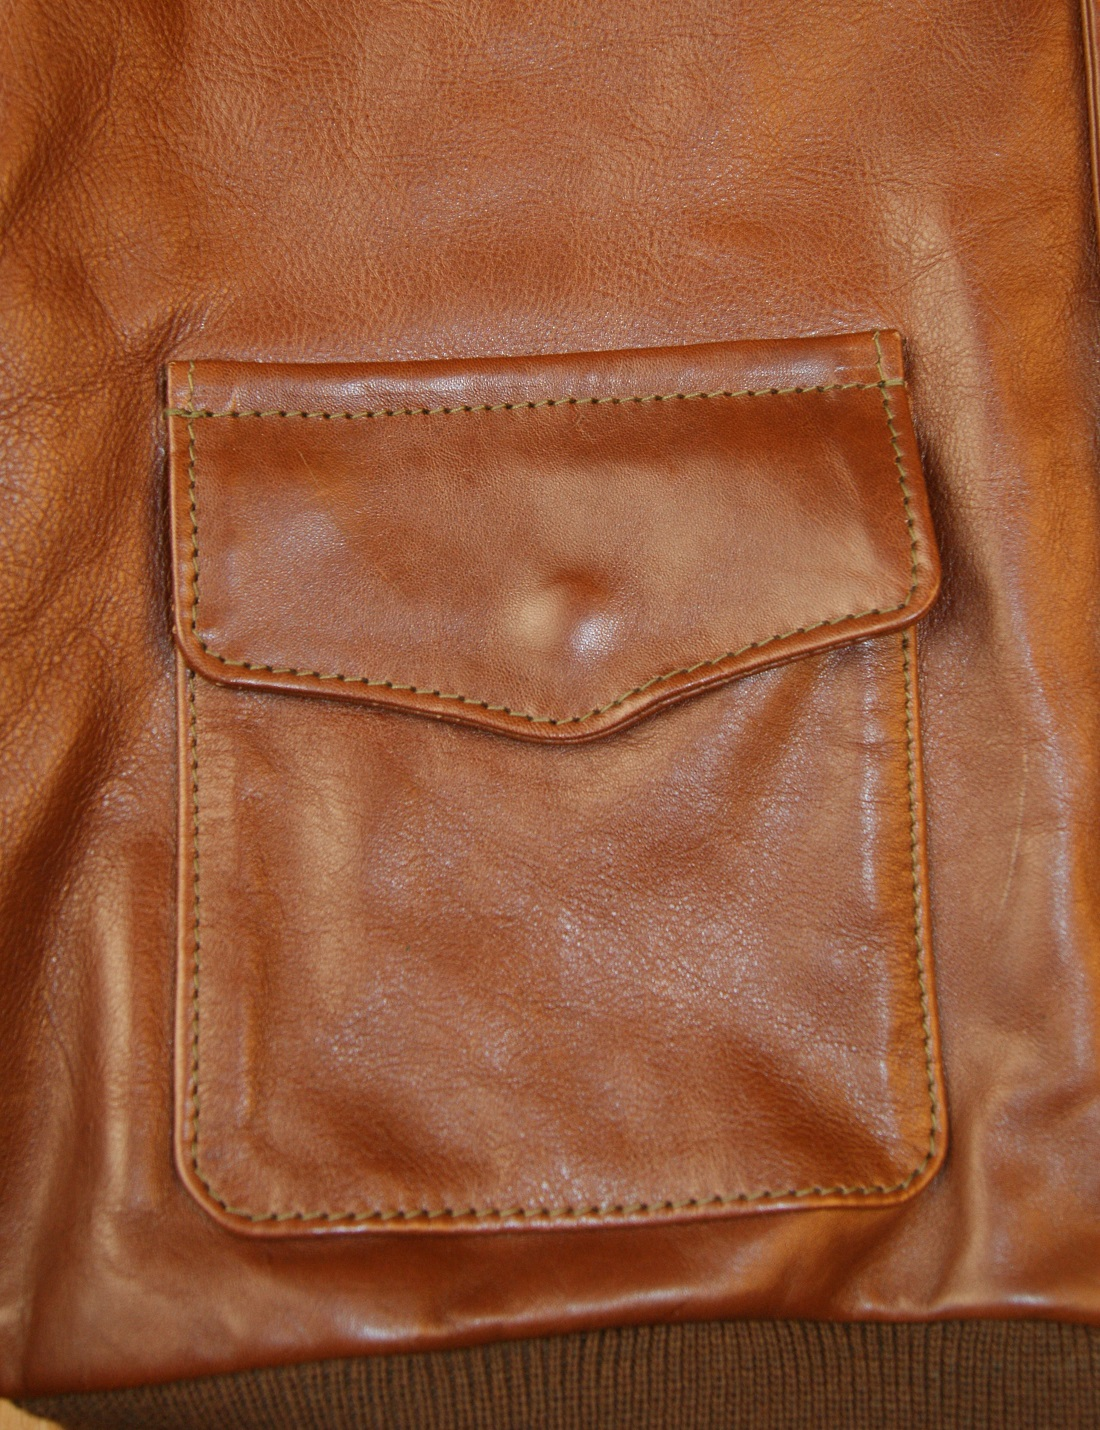 Aero Unknown Maker Russet Vicenza Horsehide KM7 patch pocket.jpg